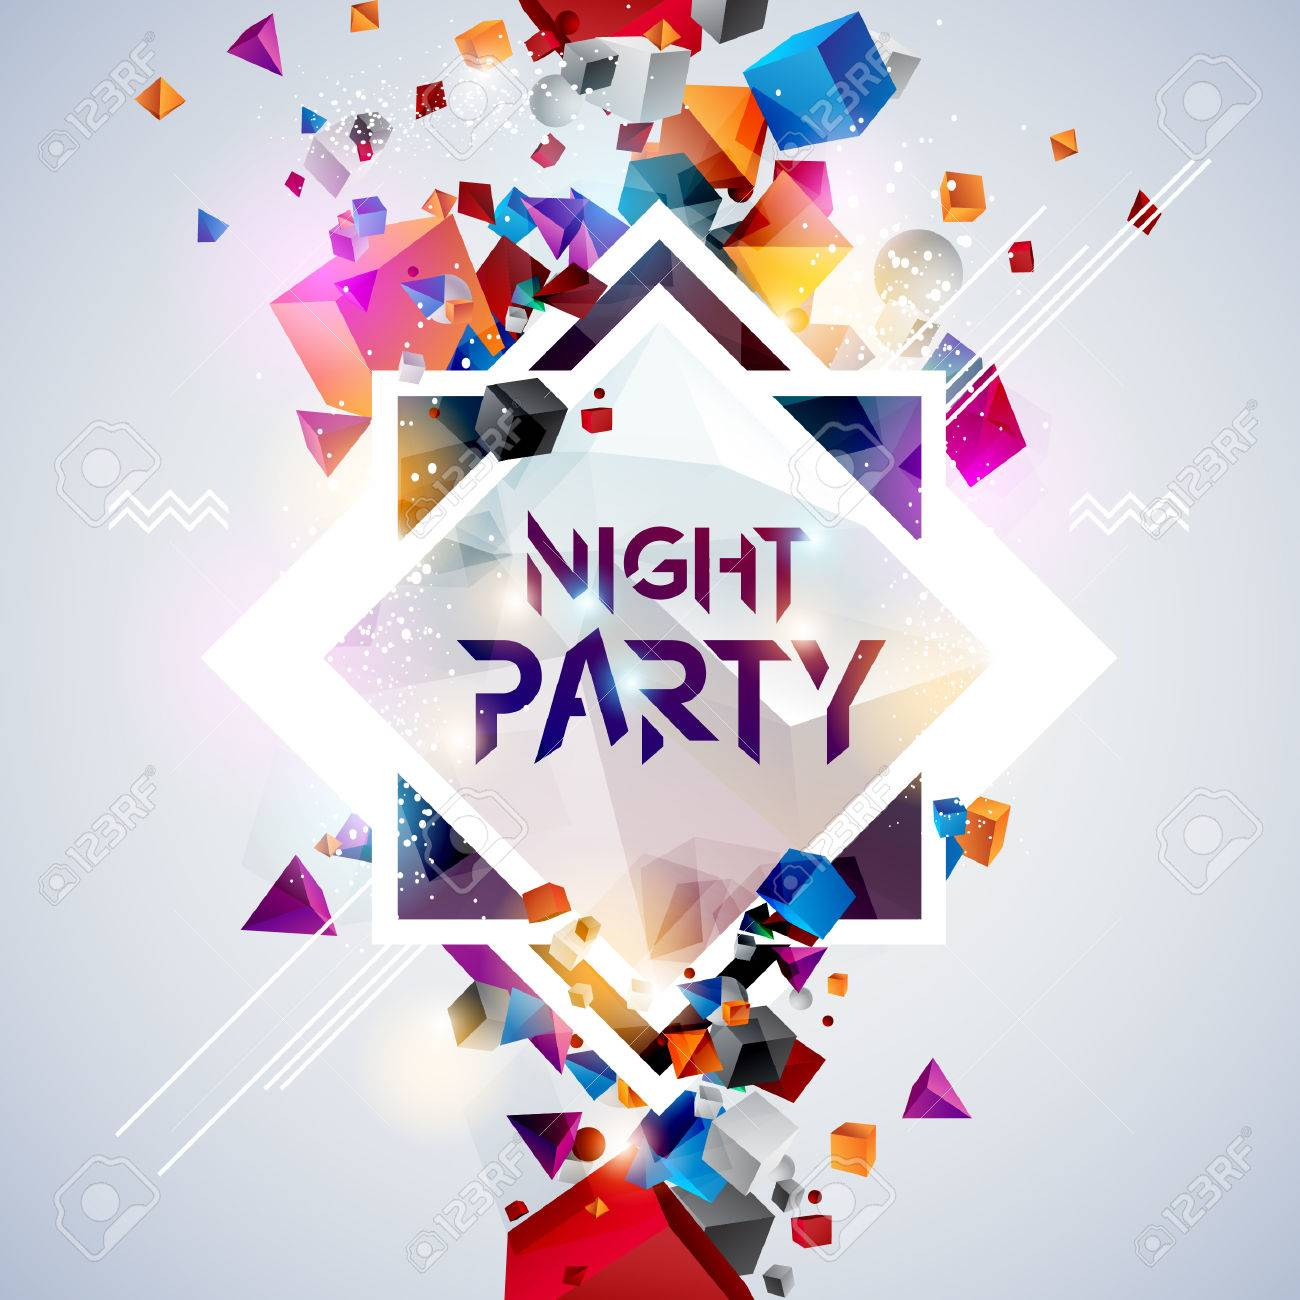 Abstract background for party poster - 48629861